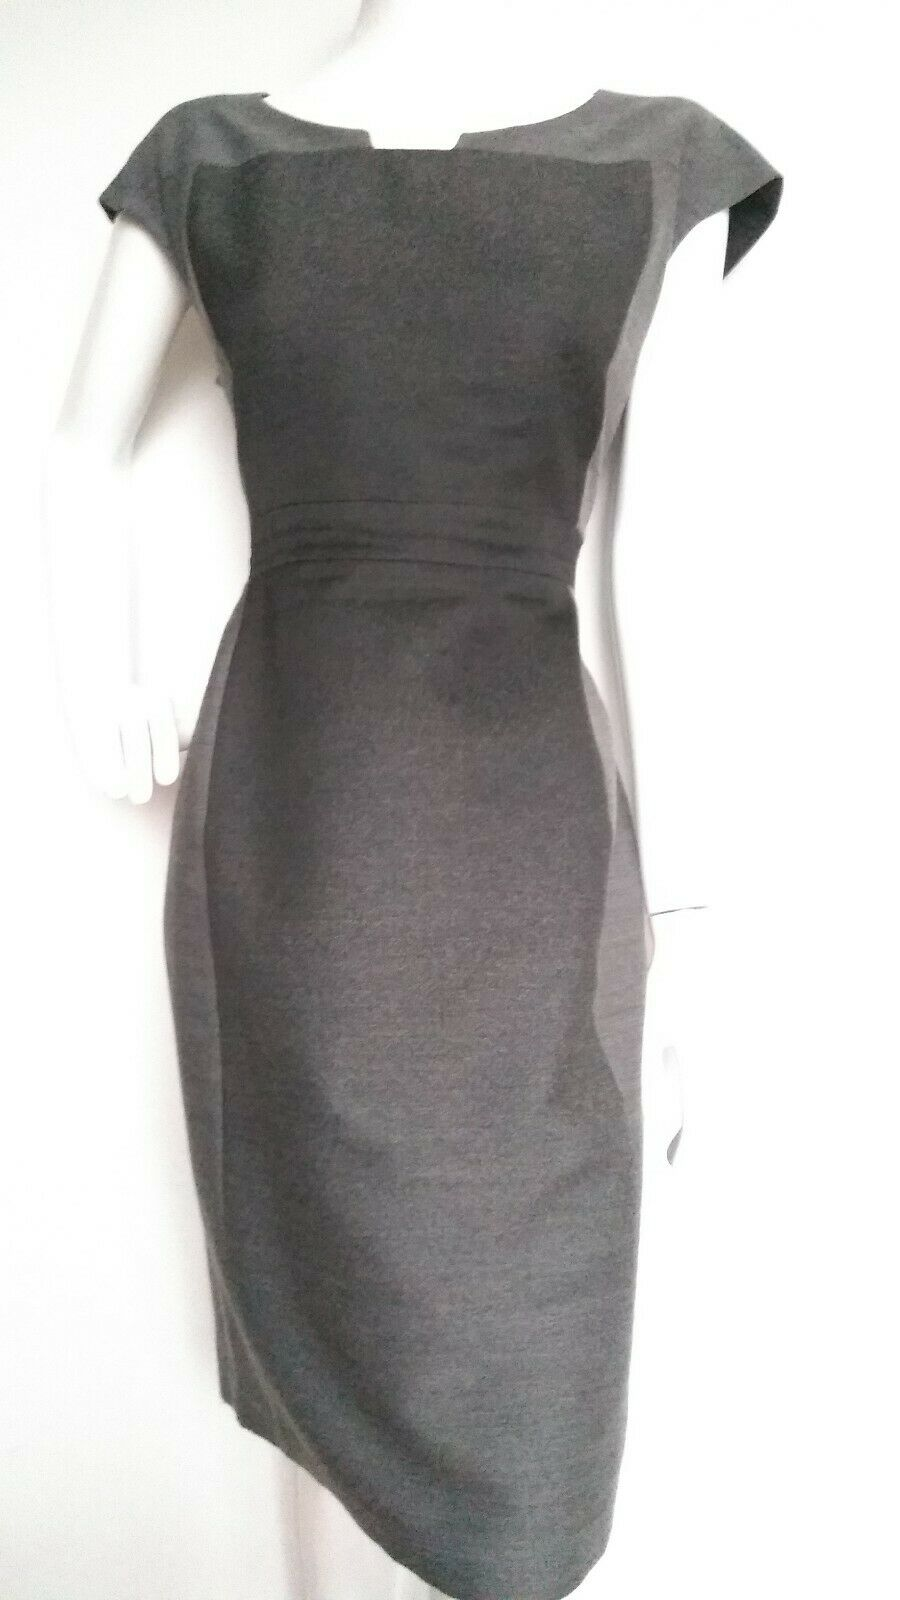 JAEGER panalled shift dress Größe 14 --VGC-- knee length wool blend grau ombre